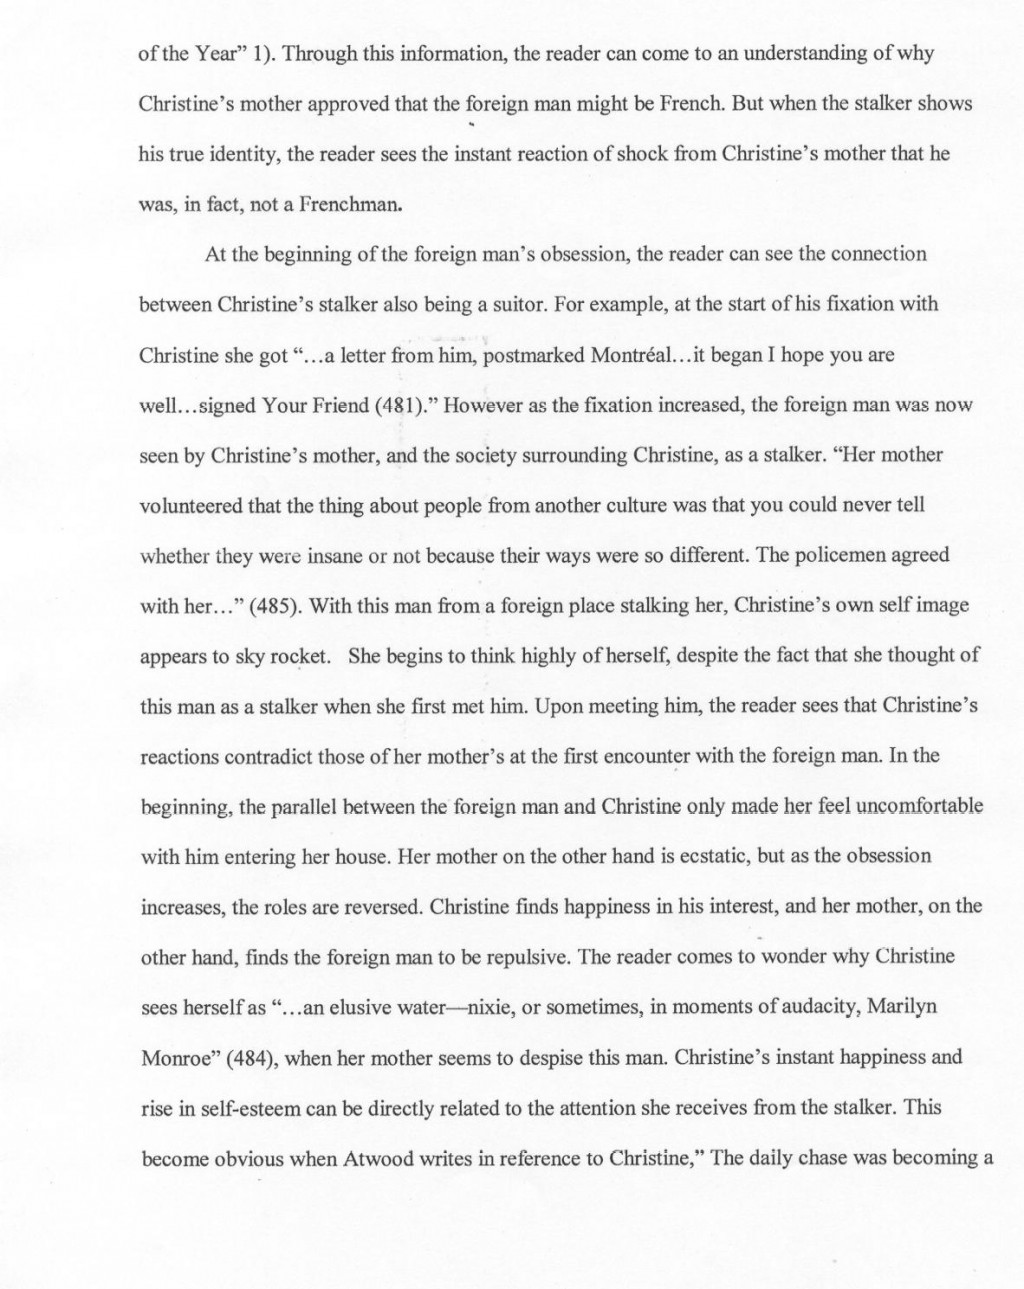 003 Essay Example Ess2ex2 3 Fearsome Page On Gun Control Double Spaced Word Count Large